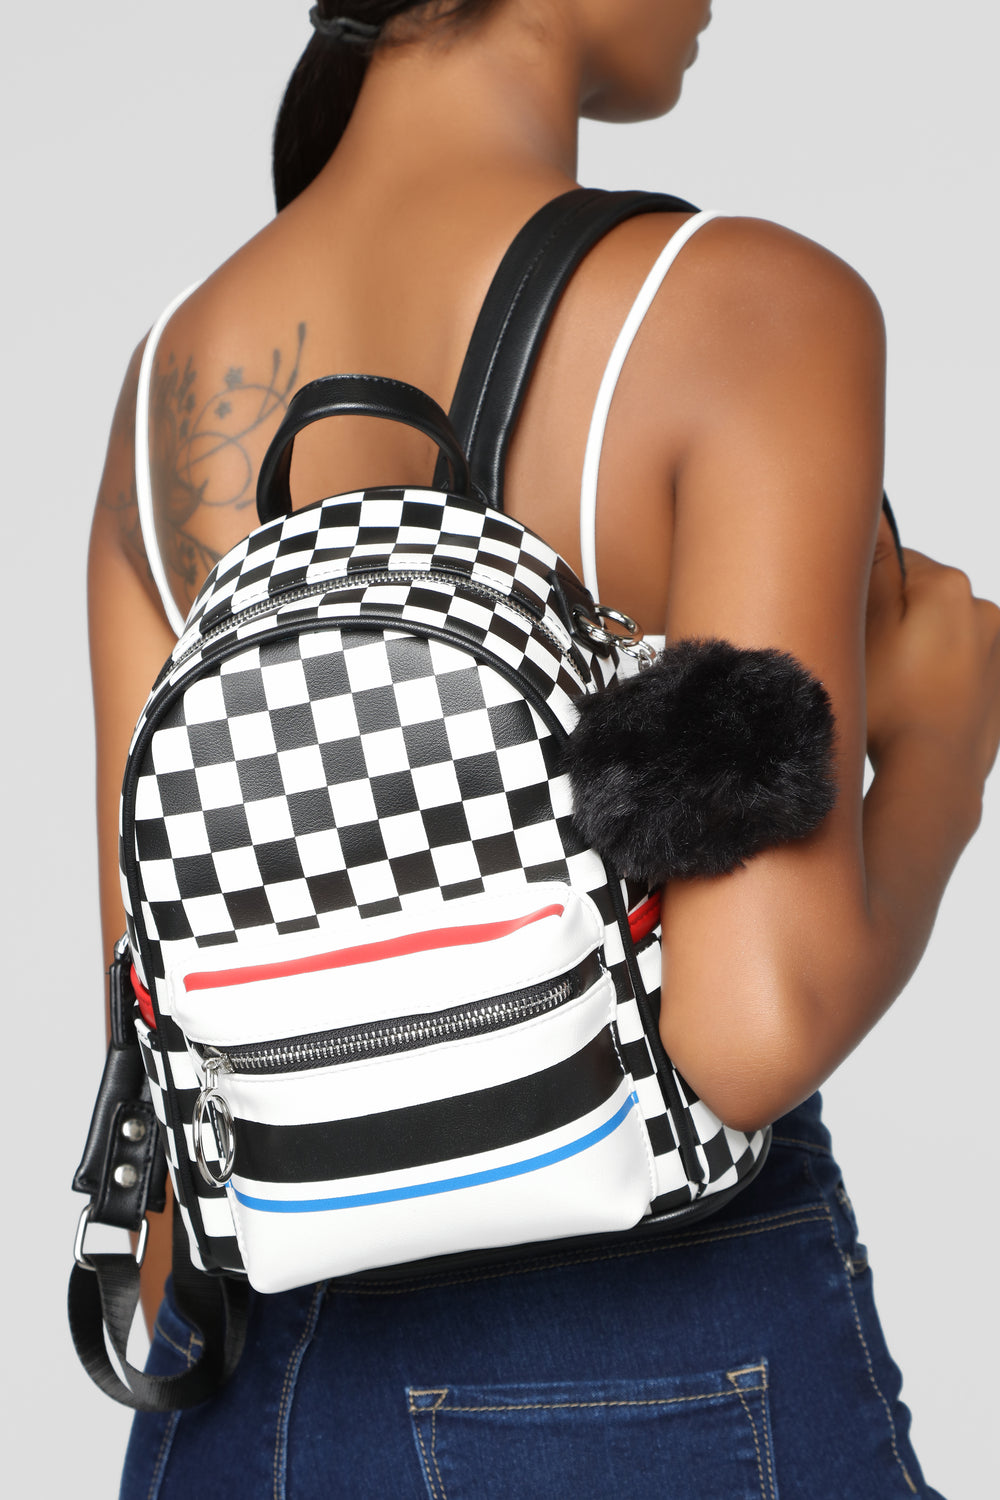 Put You In Check Backpack - White/Black